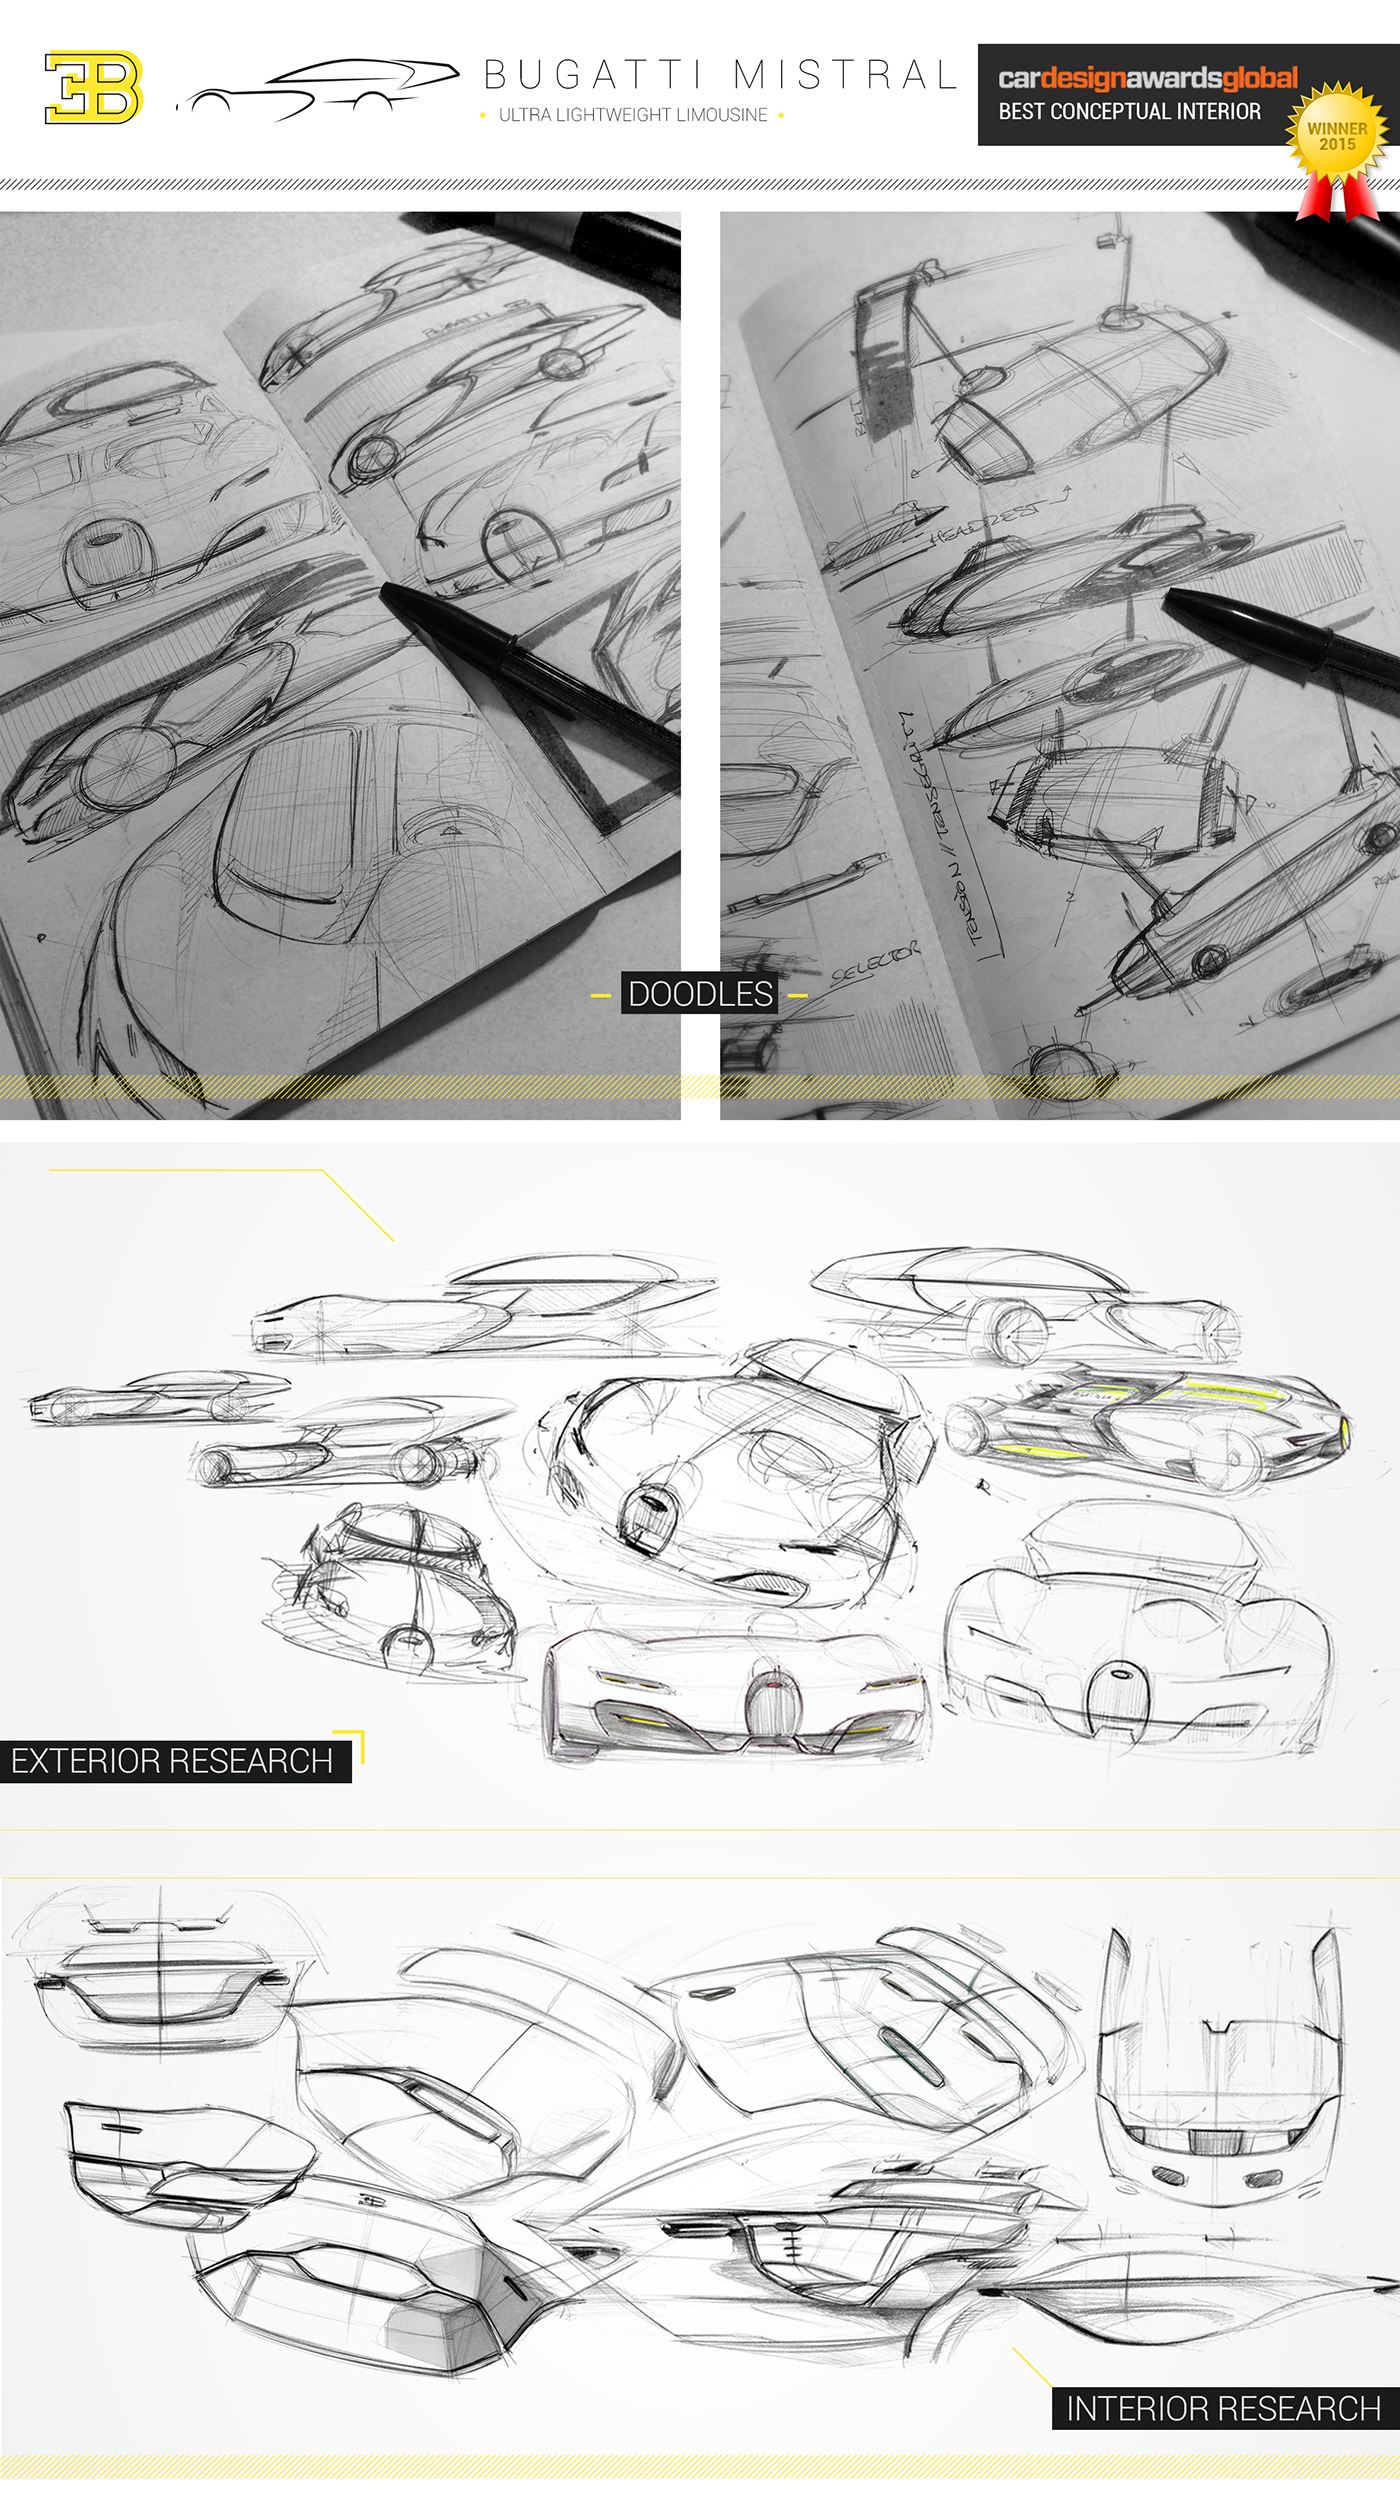 Corridor Design: Bugatti Thesis Project // Car Design Awards Global 2015 On